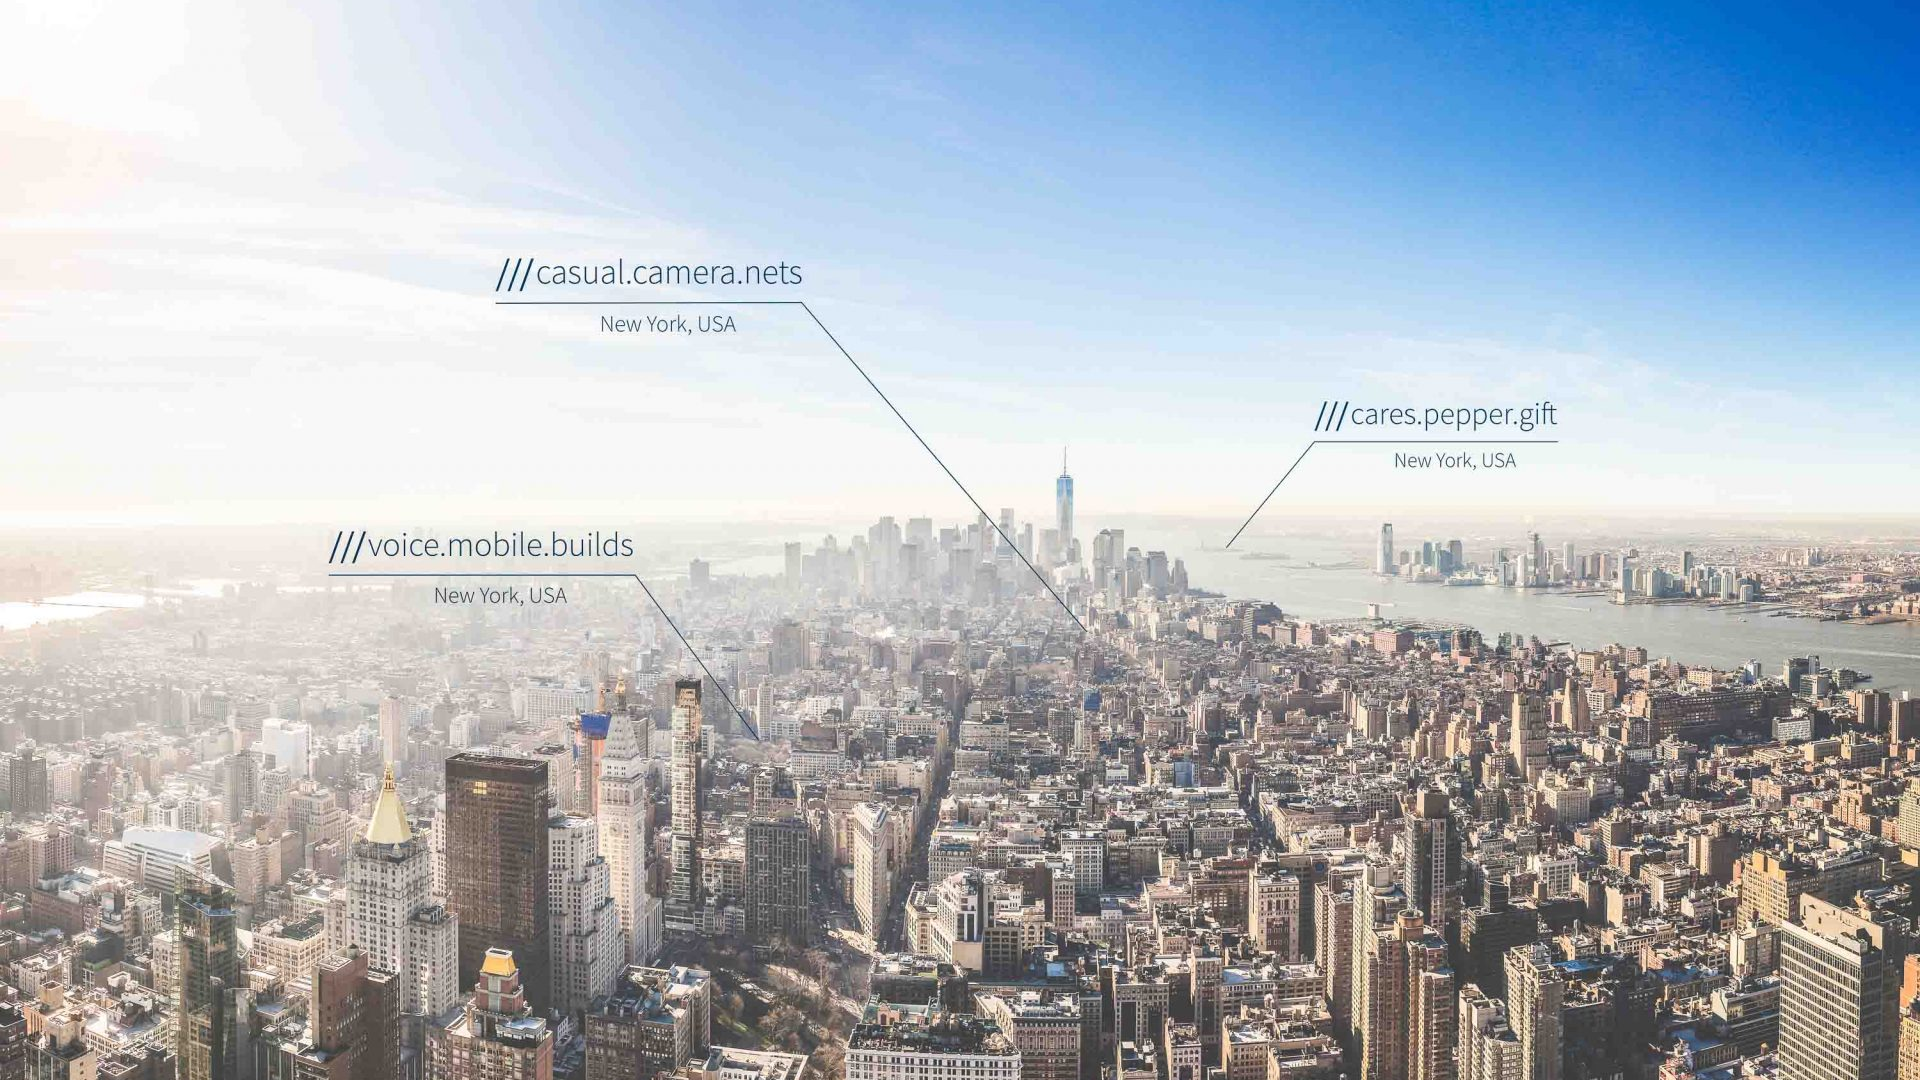 what3words system works globally. Here is generates some 3 word addresses for places in Manhattan, New York.